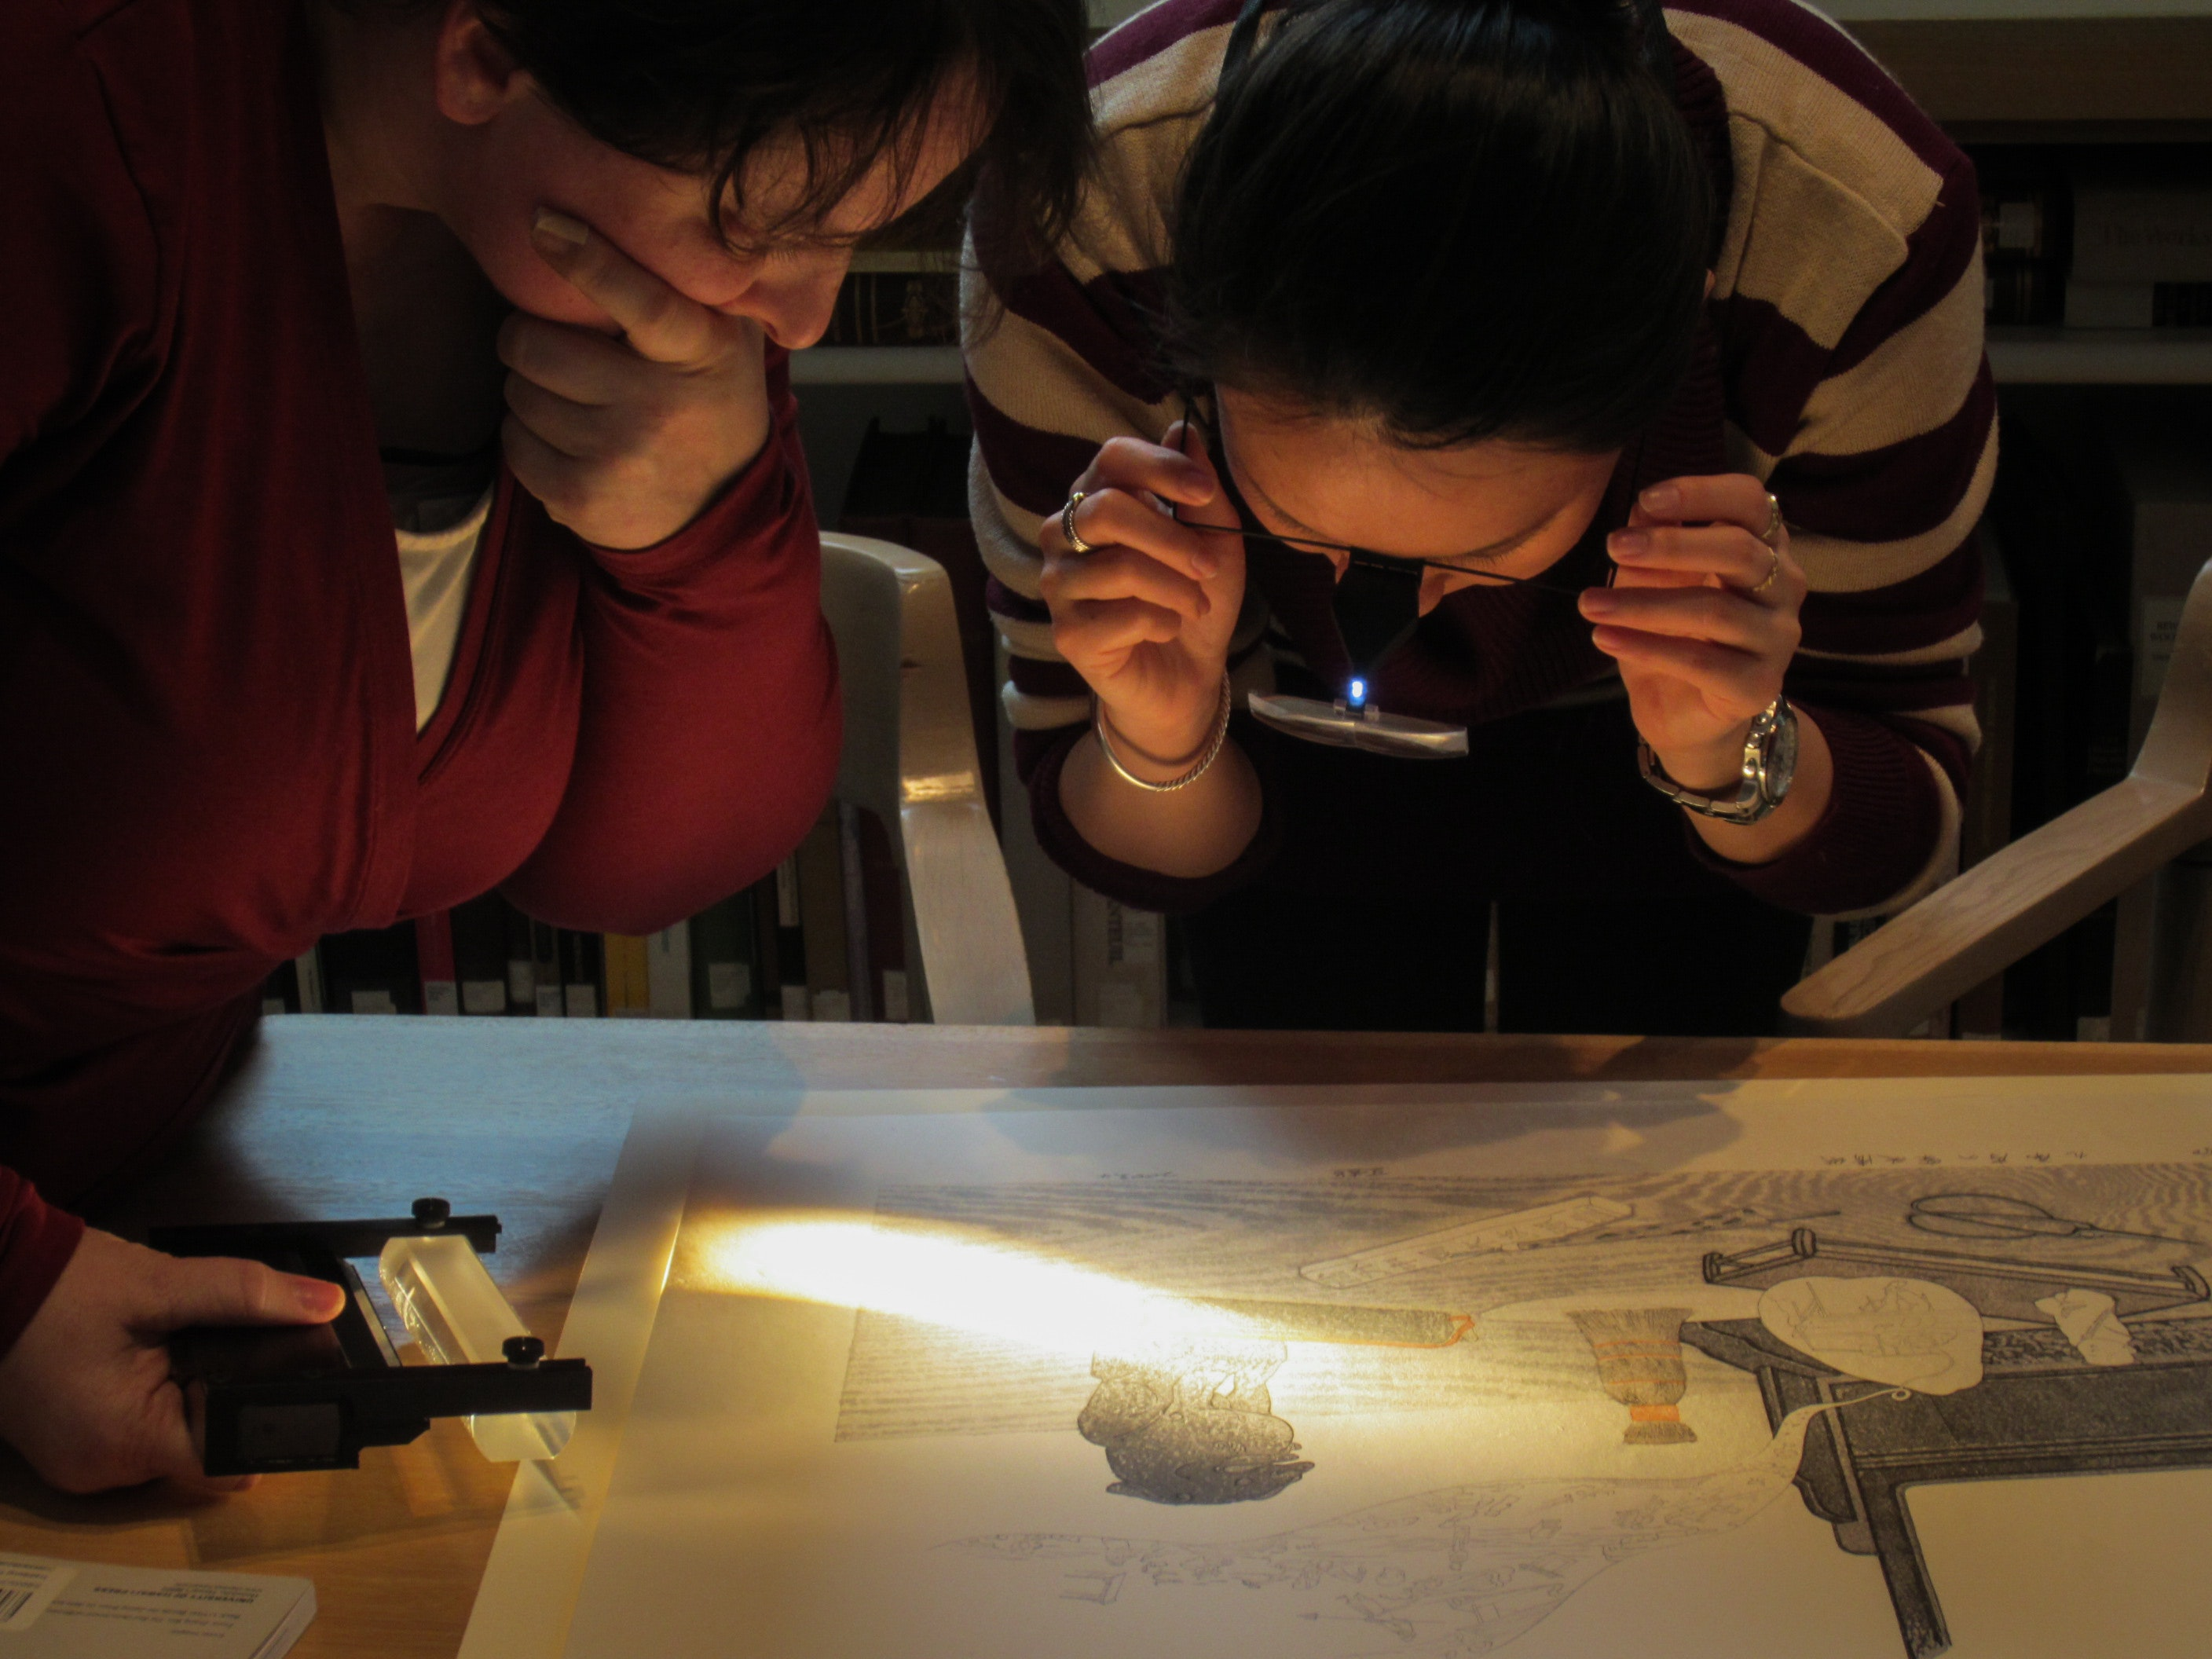 Two people look at an artwork under a magnifying glass